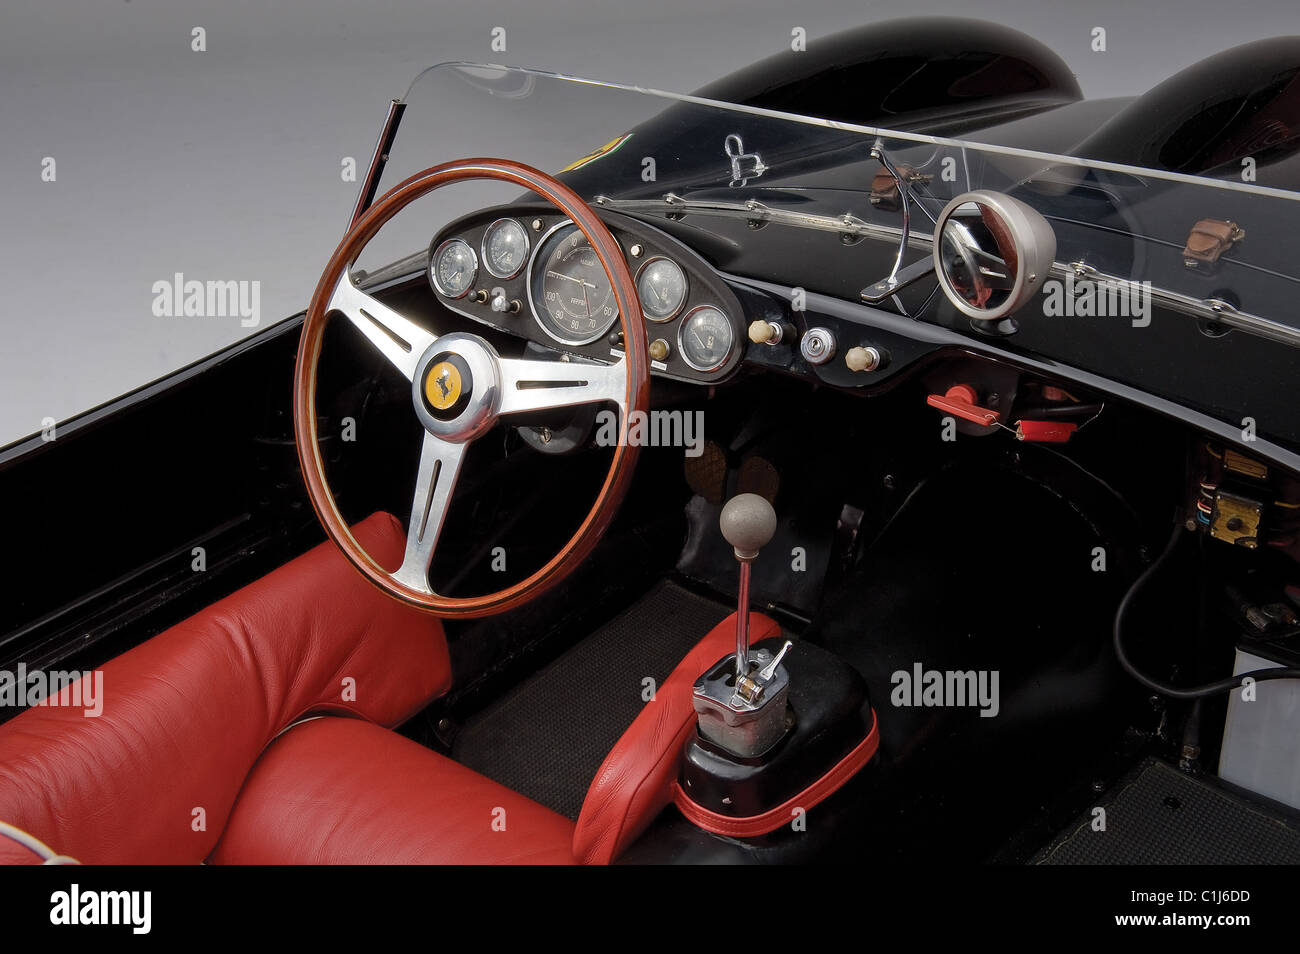 I CAR-N\'T BELIEVE THAT PRICE! This vintage Ferrari is the ultimate ...